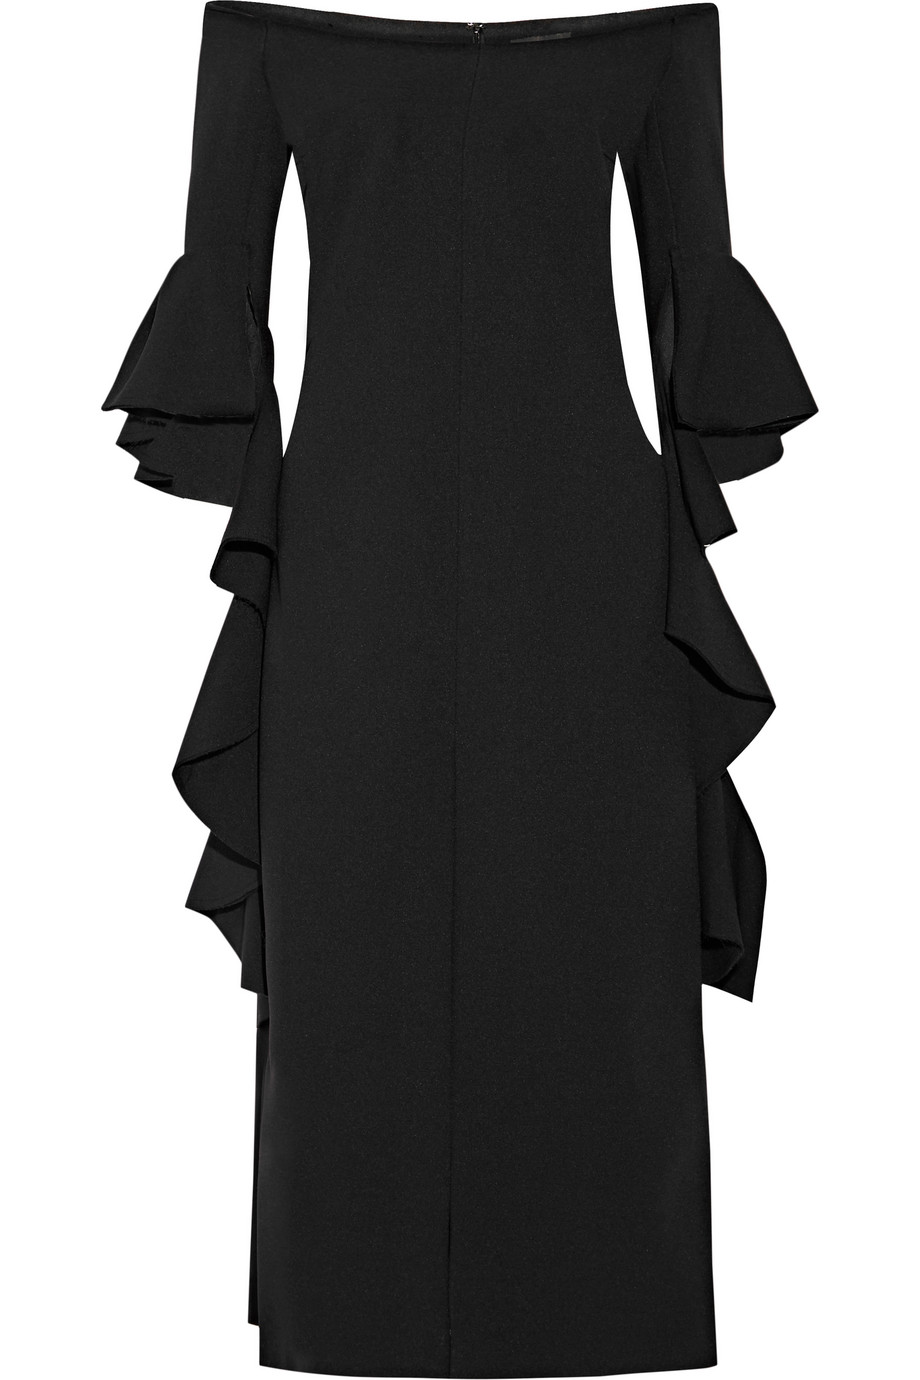 Precocious Off-the-Shoulder Ruffled Crepe Midi Dress, Black, Women's, Size: 4